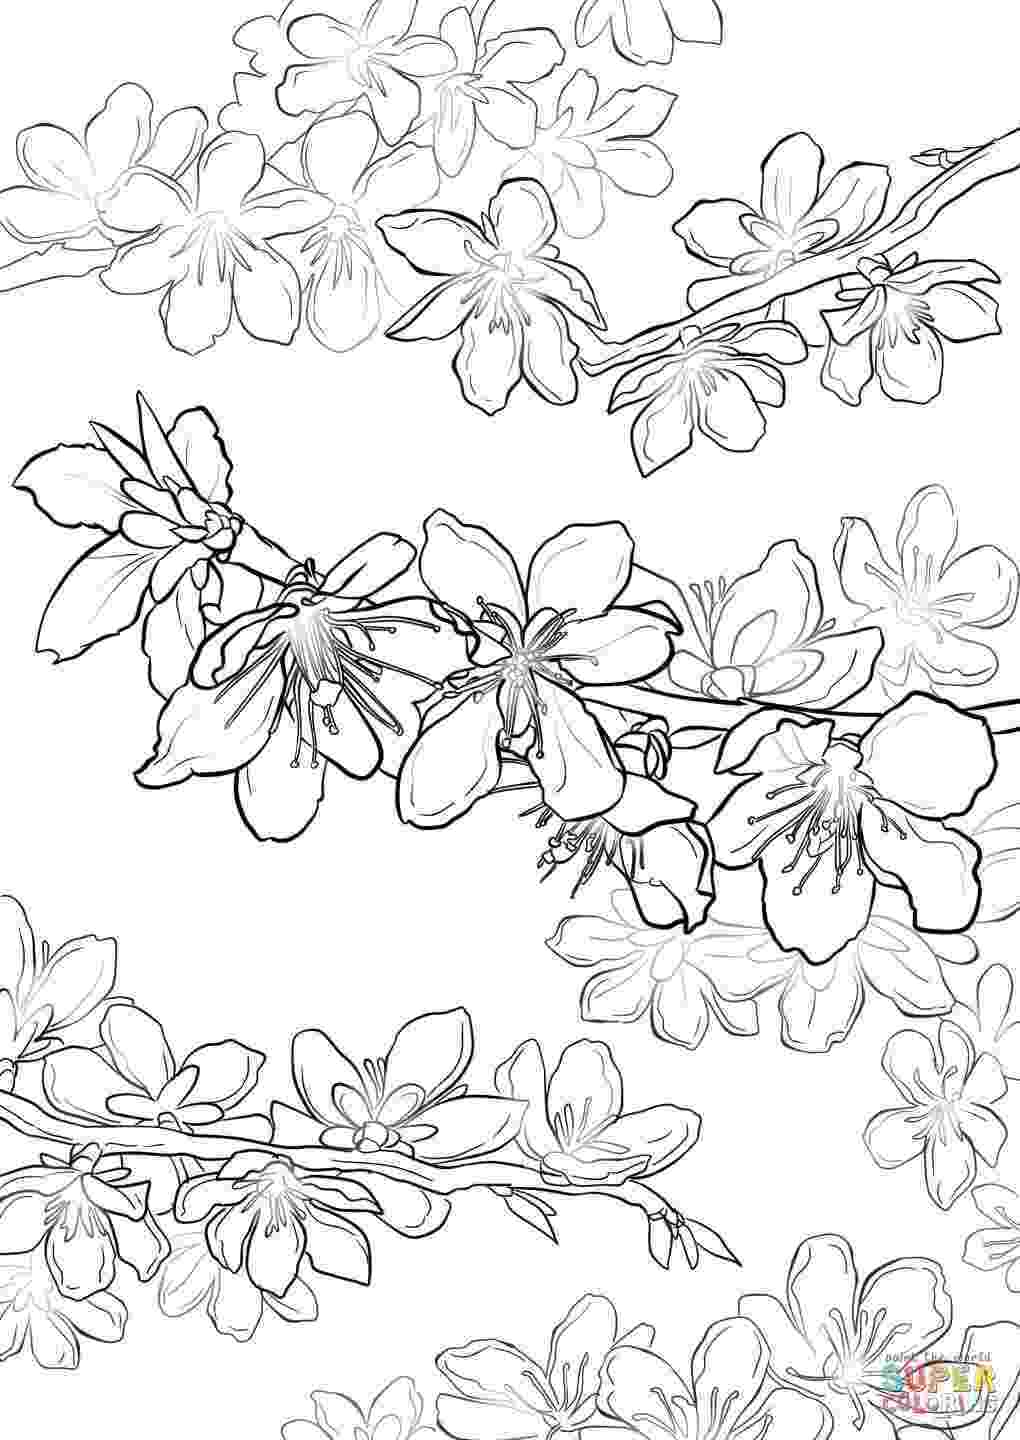 cherry blossom coloring pages japanese cherry blossoms drawing at getdrawingscom free cherry coloring pages blossom